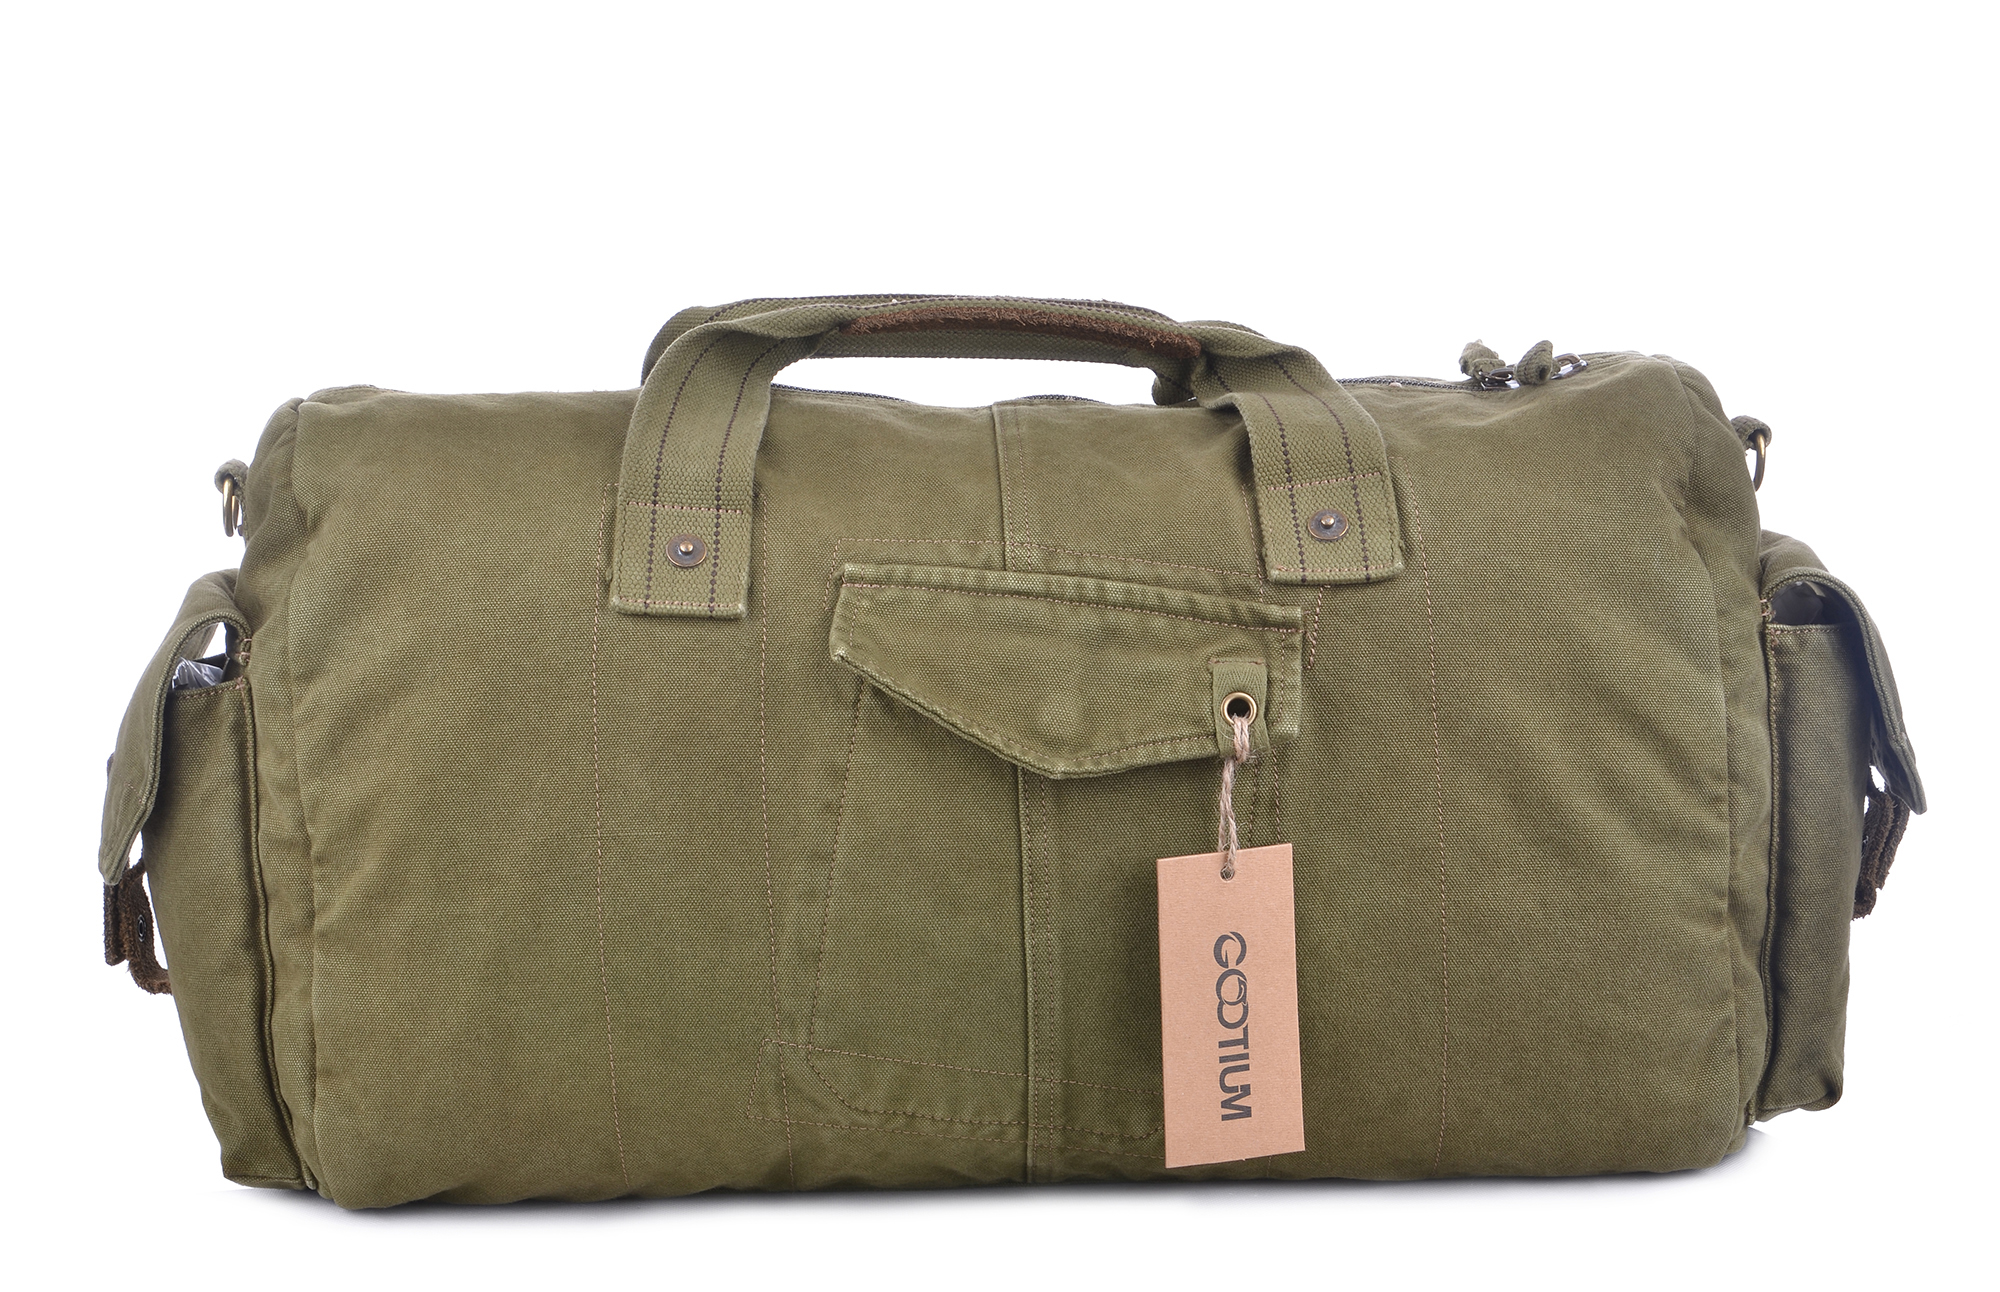 Gootium Vintage Canvas Duffle Bag Travel Tote Weekend Holdall Sports Gym Bag,  Army Green df44e53ab4